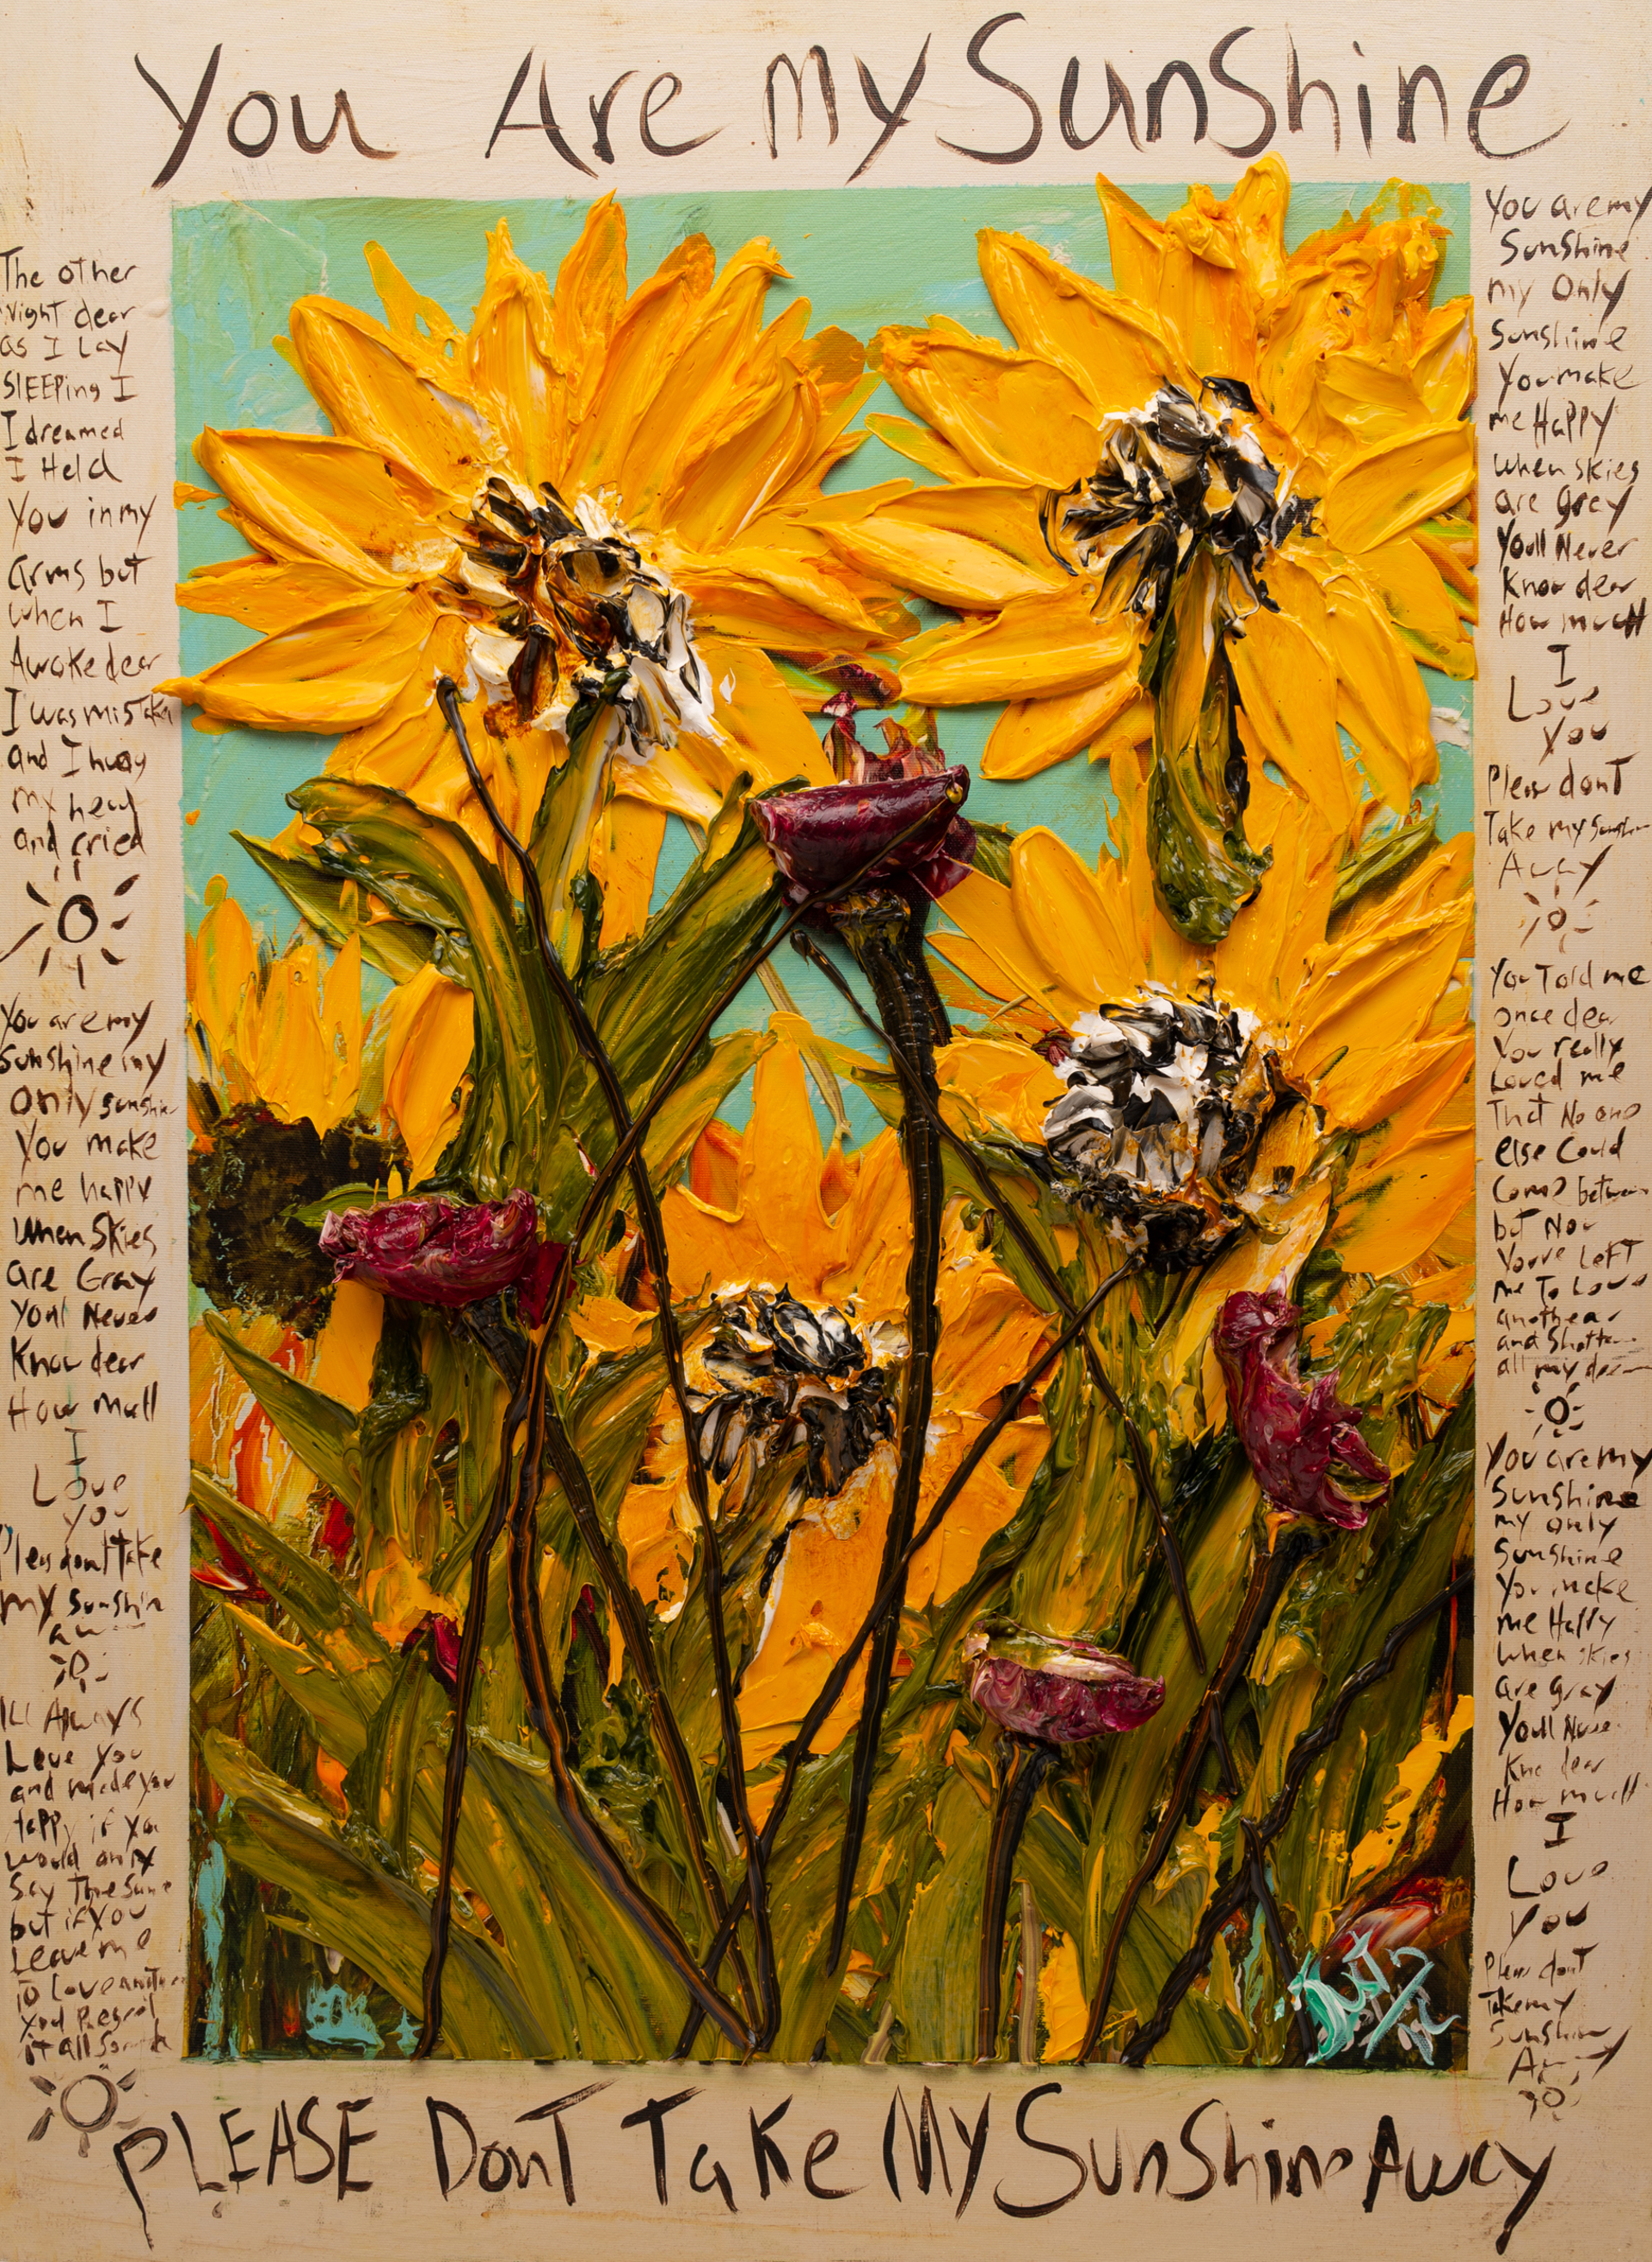 YOU ARE MY SUNSHINE URMS HPAE 11-50-24X32-2019-33 by JUSTIN GAFFREY EDITIONS